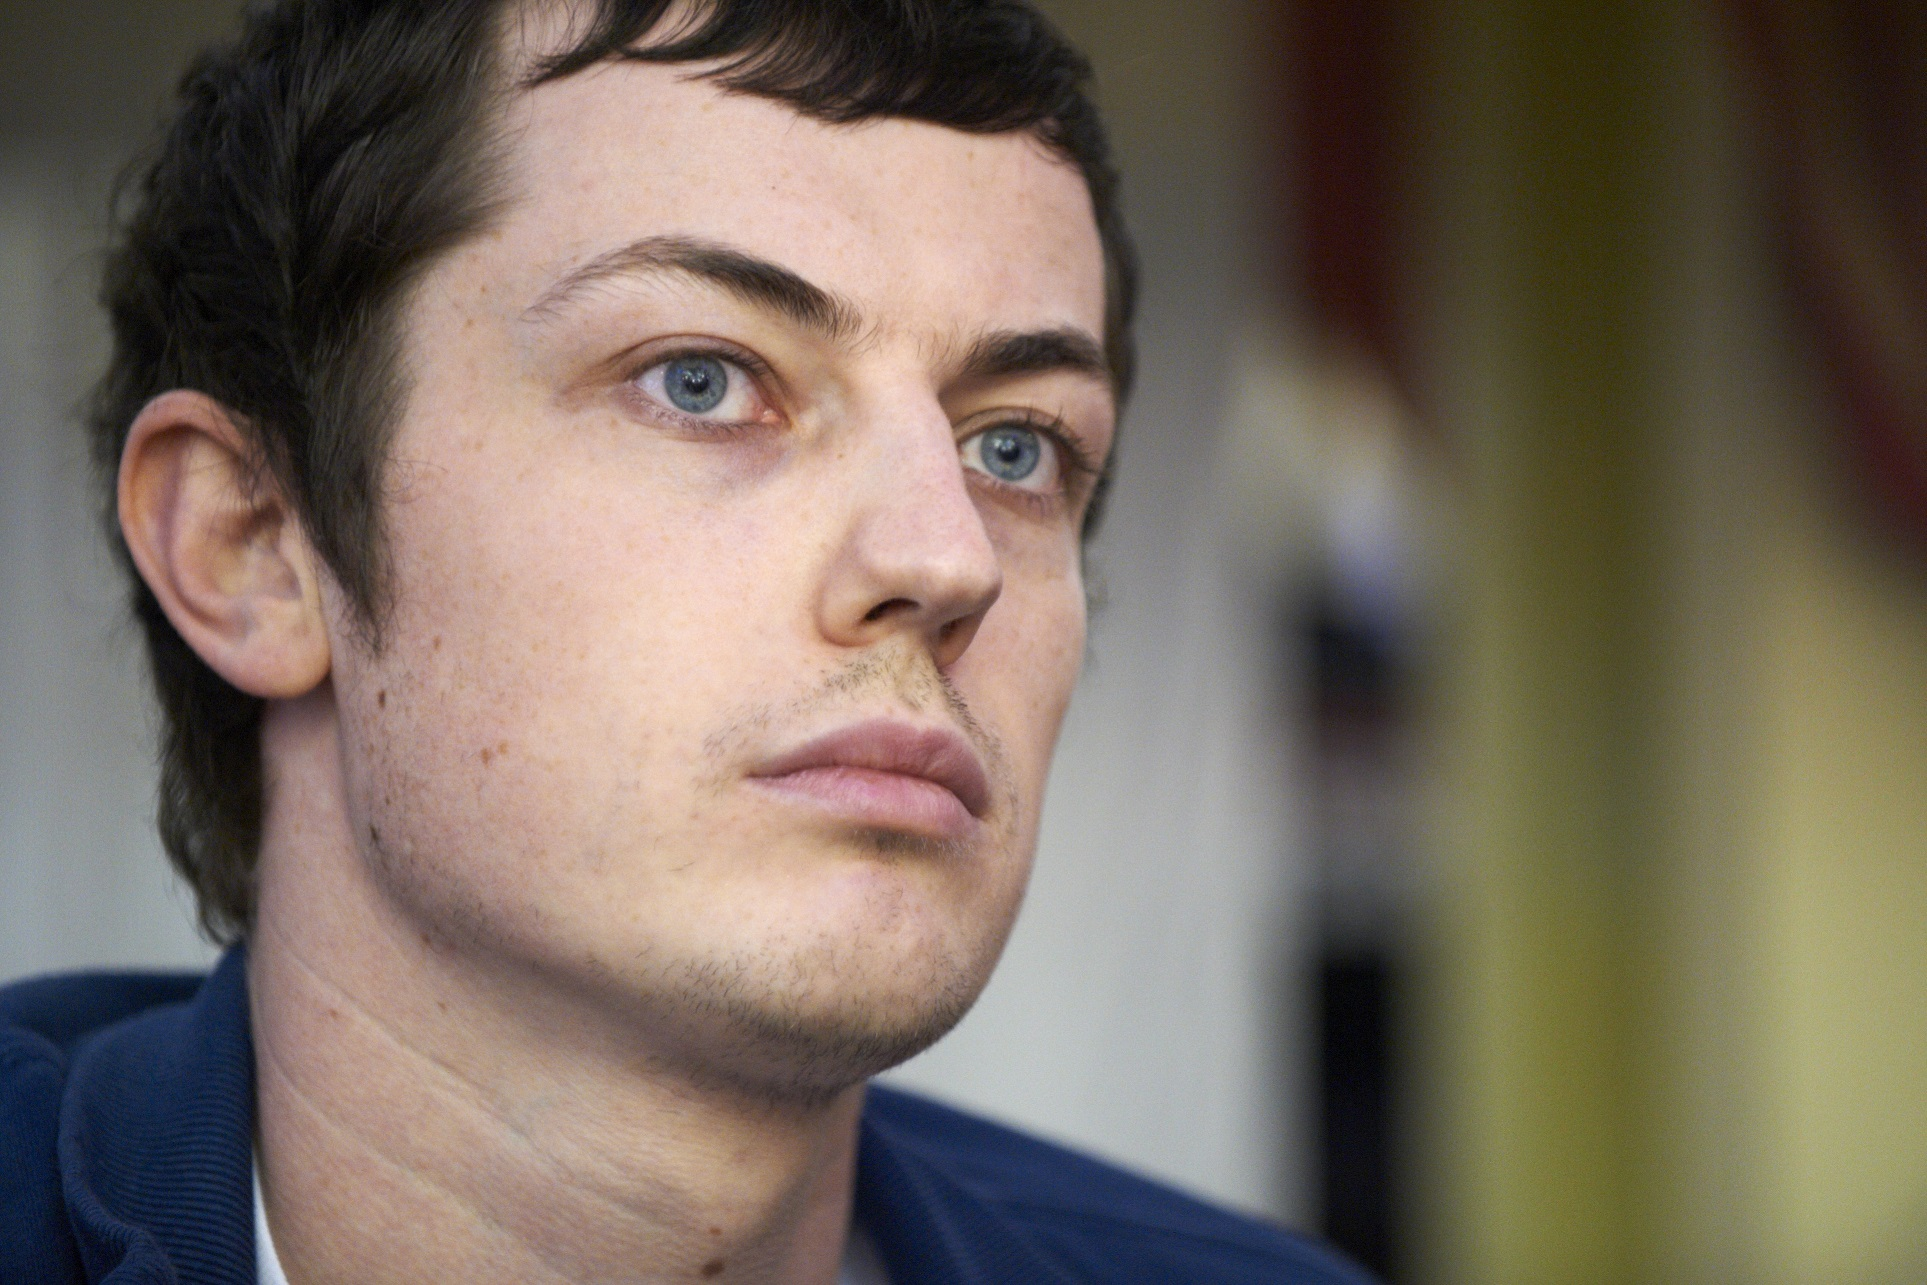 Tom Dwan hides from US authorities?